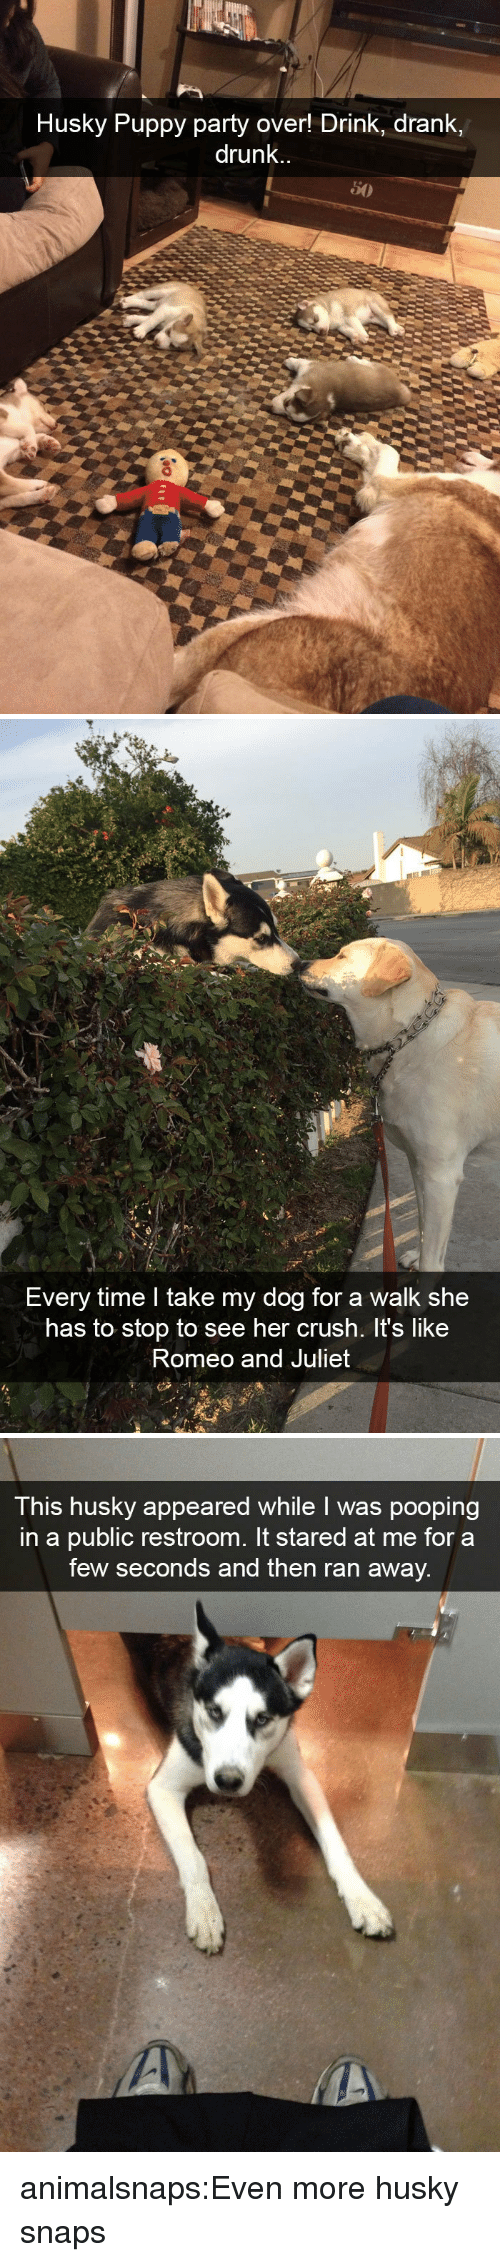 Husky Puppy: Husky Puppy party over! Drink, drank,  drunk.   Every time I take my dog for a walk she  has to stop to see her crush. It's like  Romeo and Juliet   This husky appeared while I was pooping  in a public restroom. It stared at me for a  few seconds and then ran away. animalsnaps:Even more husky snaps